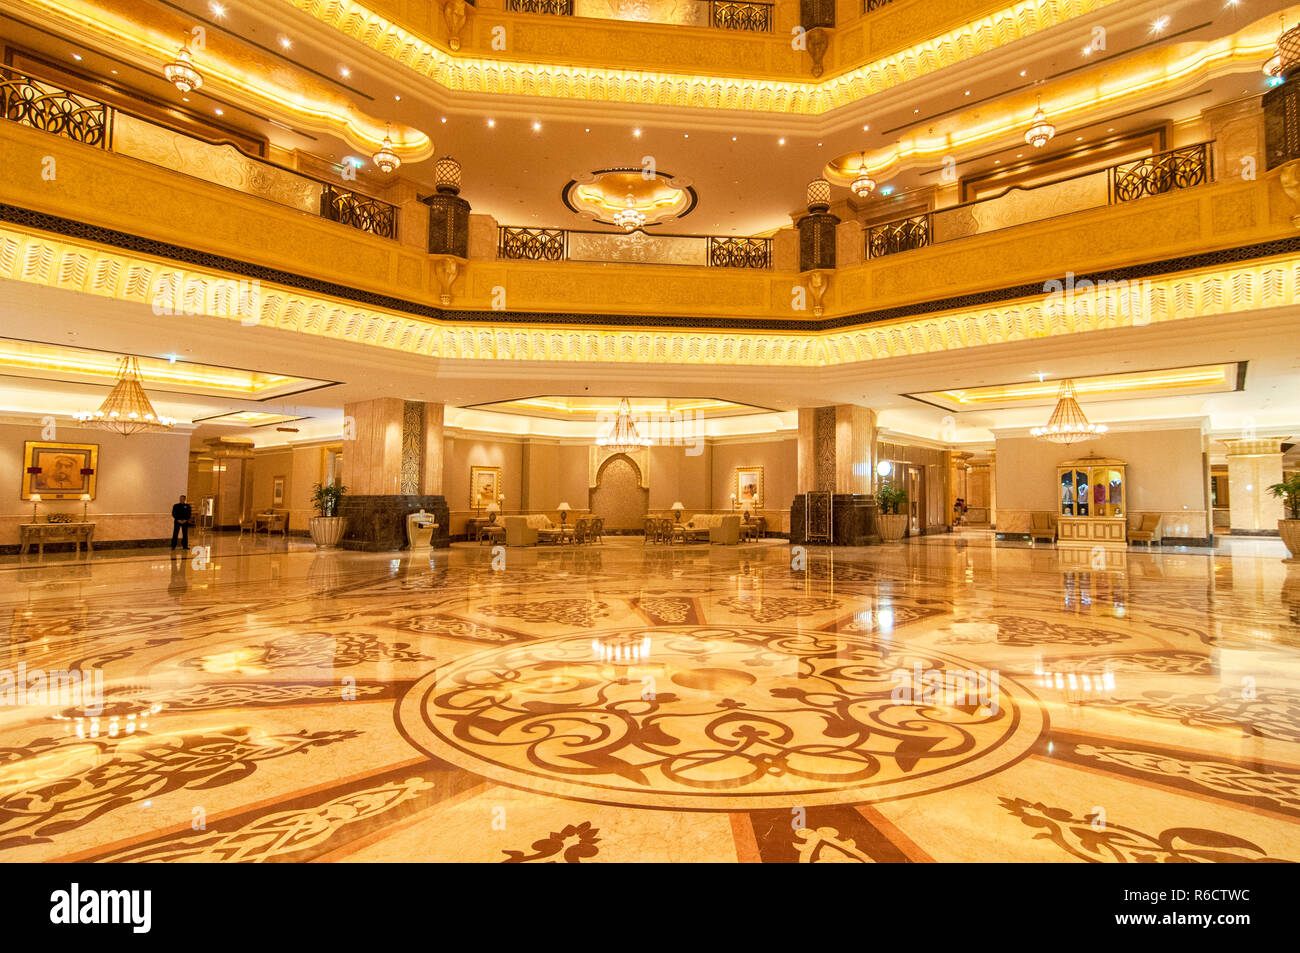 Hall Decoration In Emirates Palace Hotel A Luxurious And The Most